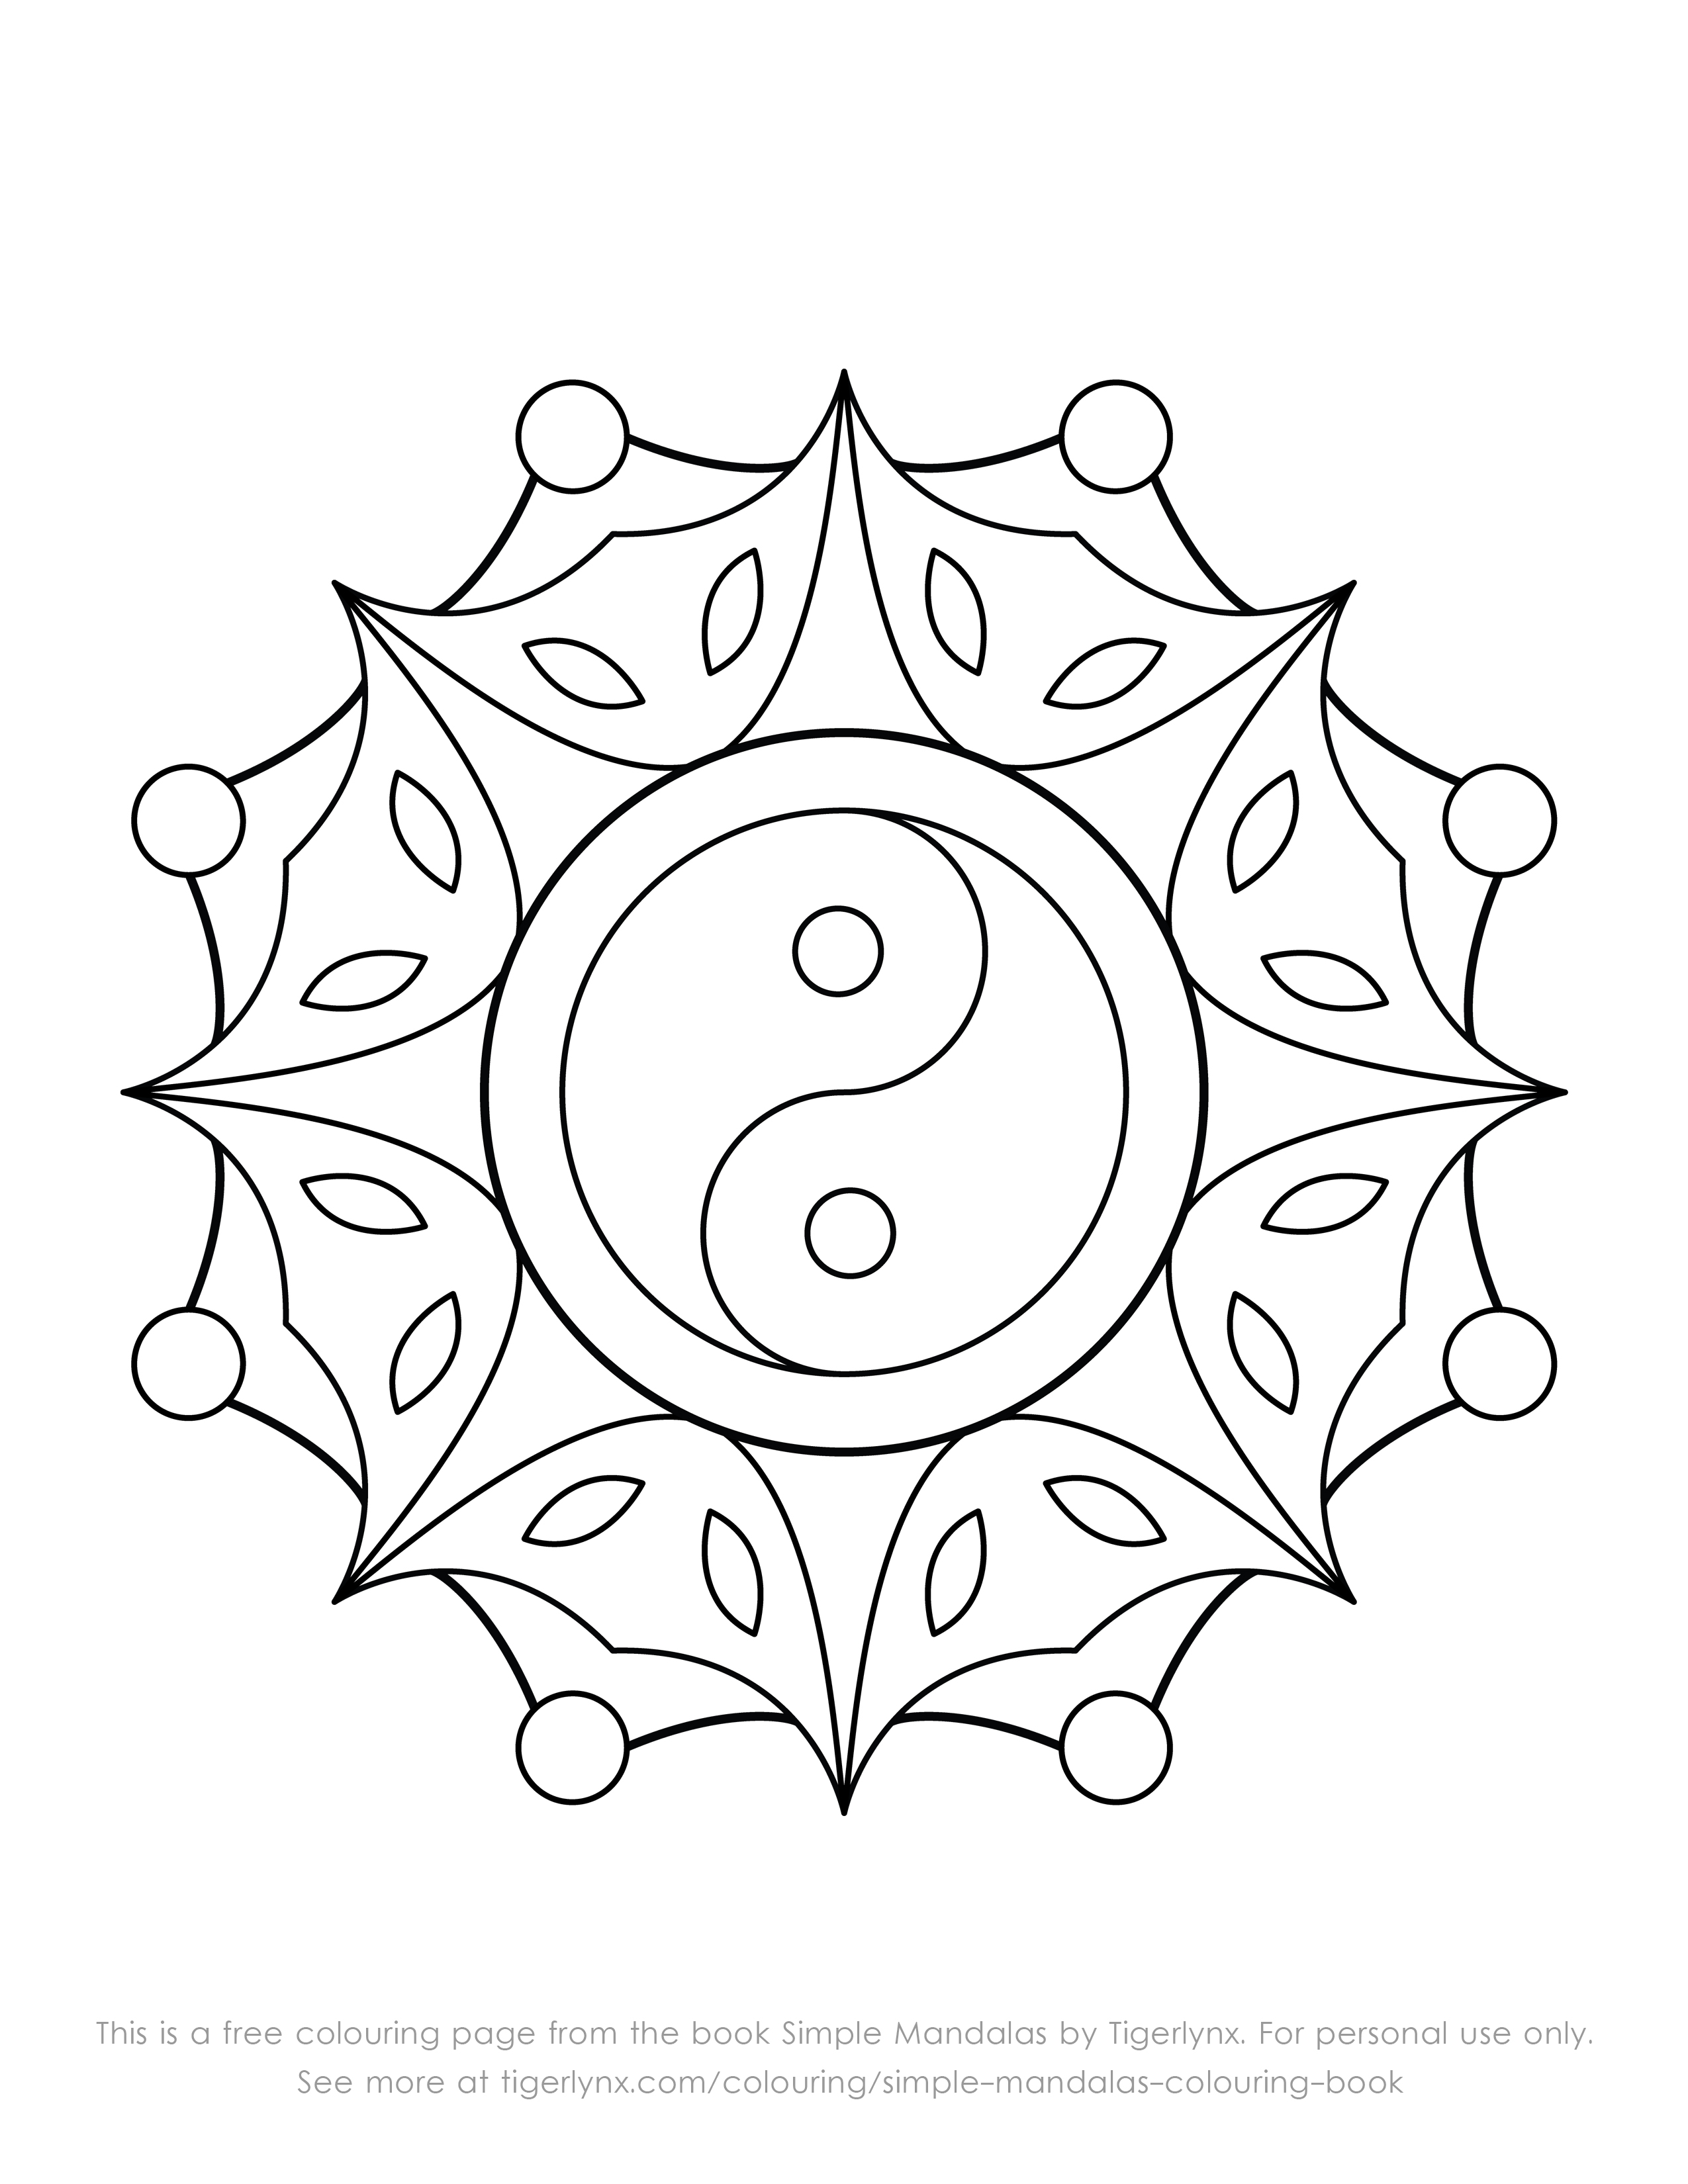 simple mandalas colouring books and pages simple mandalas